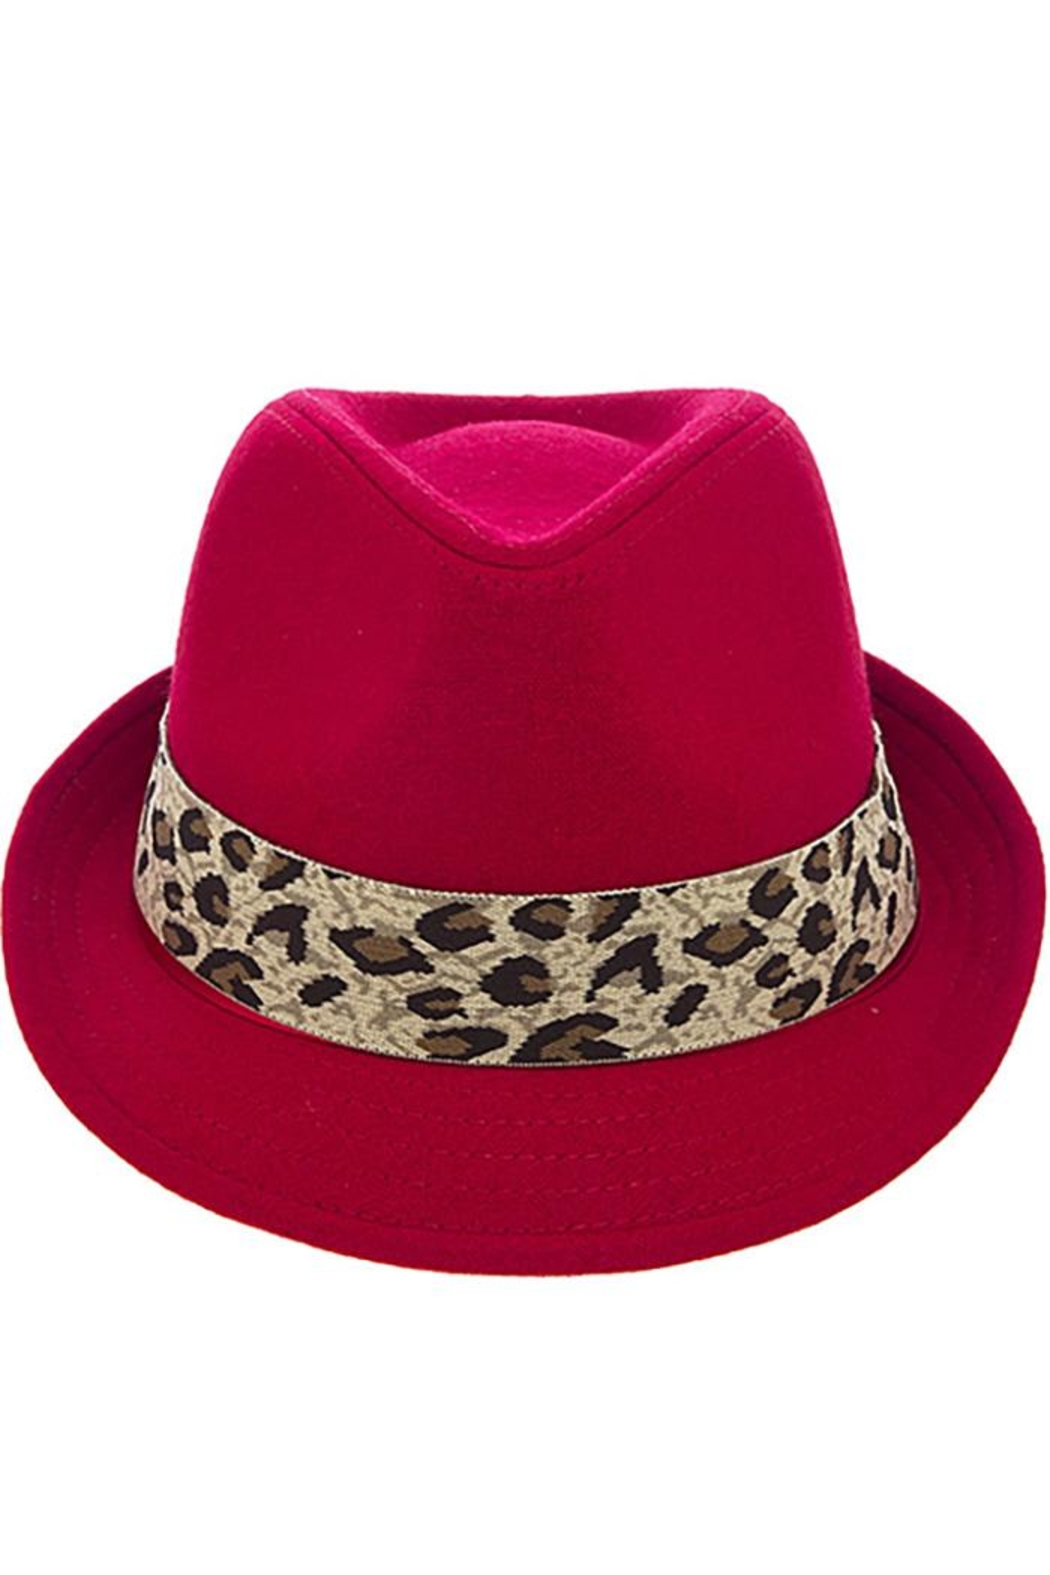 The Hatter Company Leopard Print Band-Fedora - Front Cropped Image